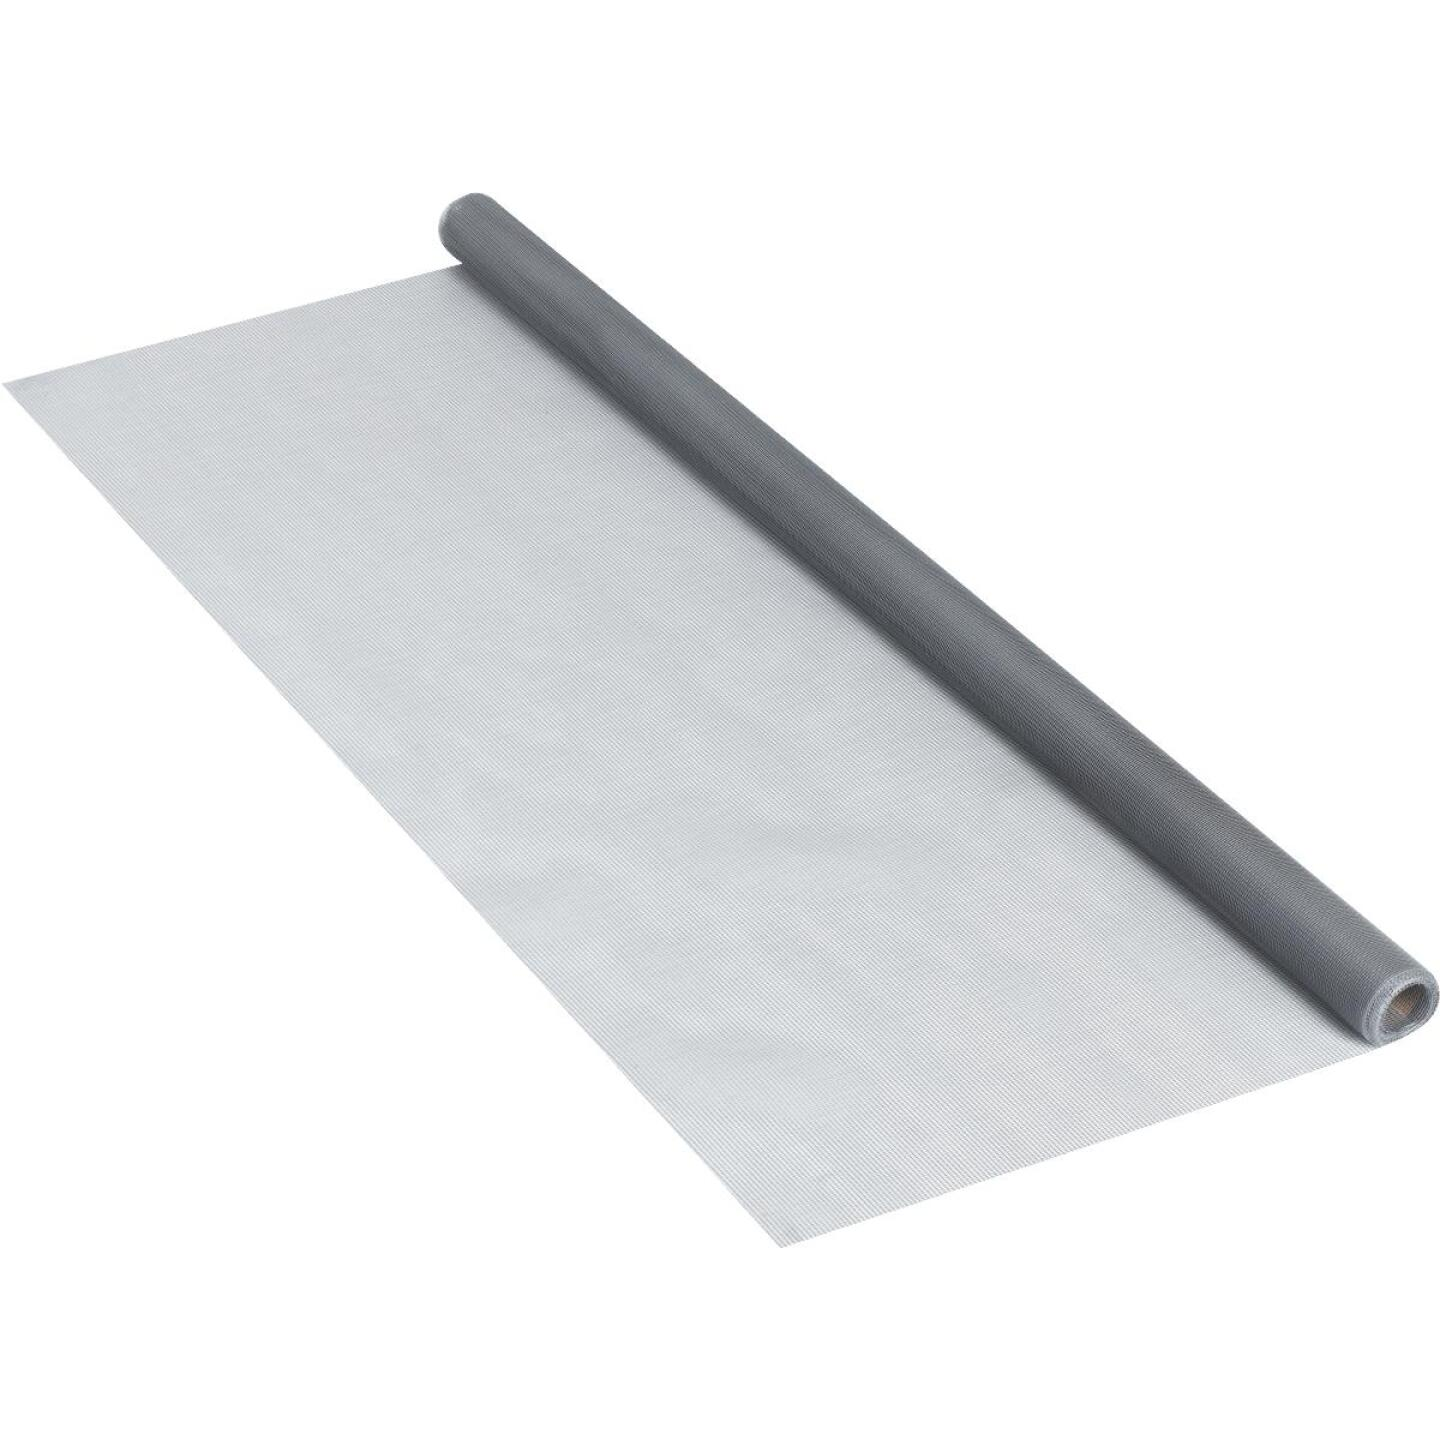 Phifer 36 In. x 84 In. Gray Fiberglass Screen Cloth Ready Rolls Image 2